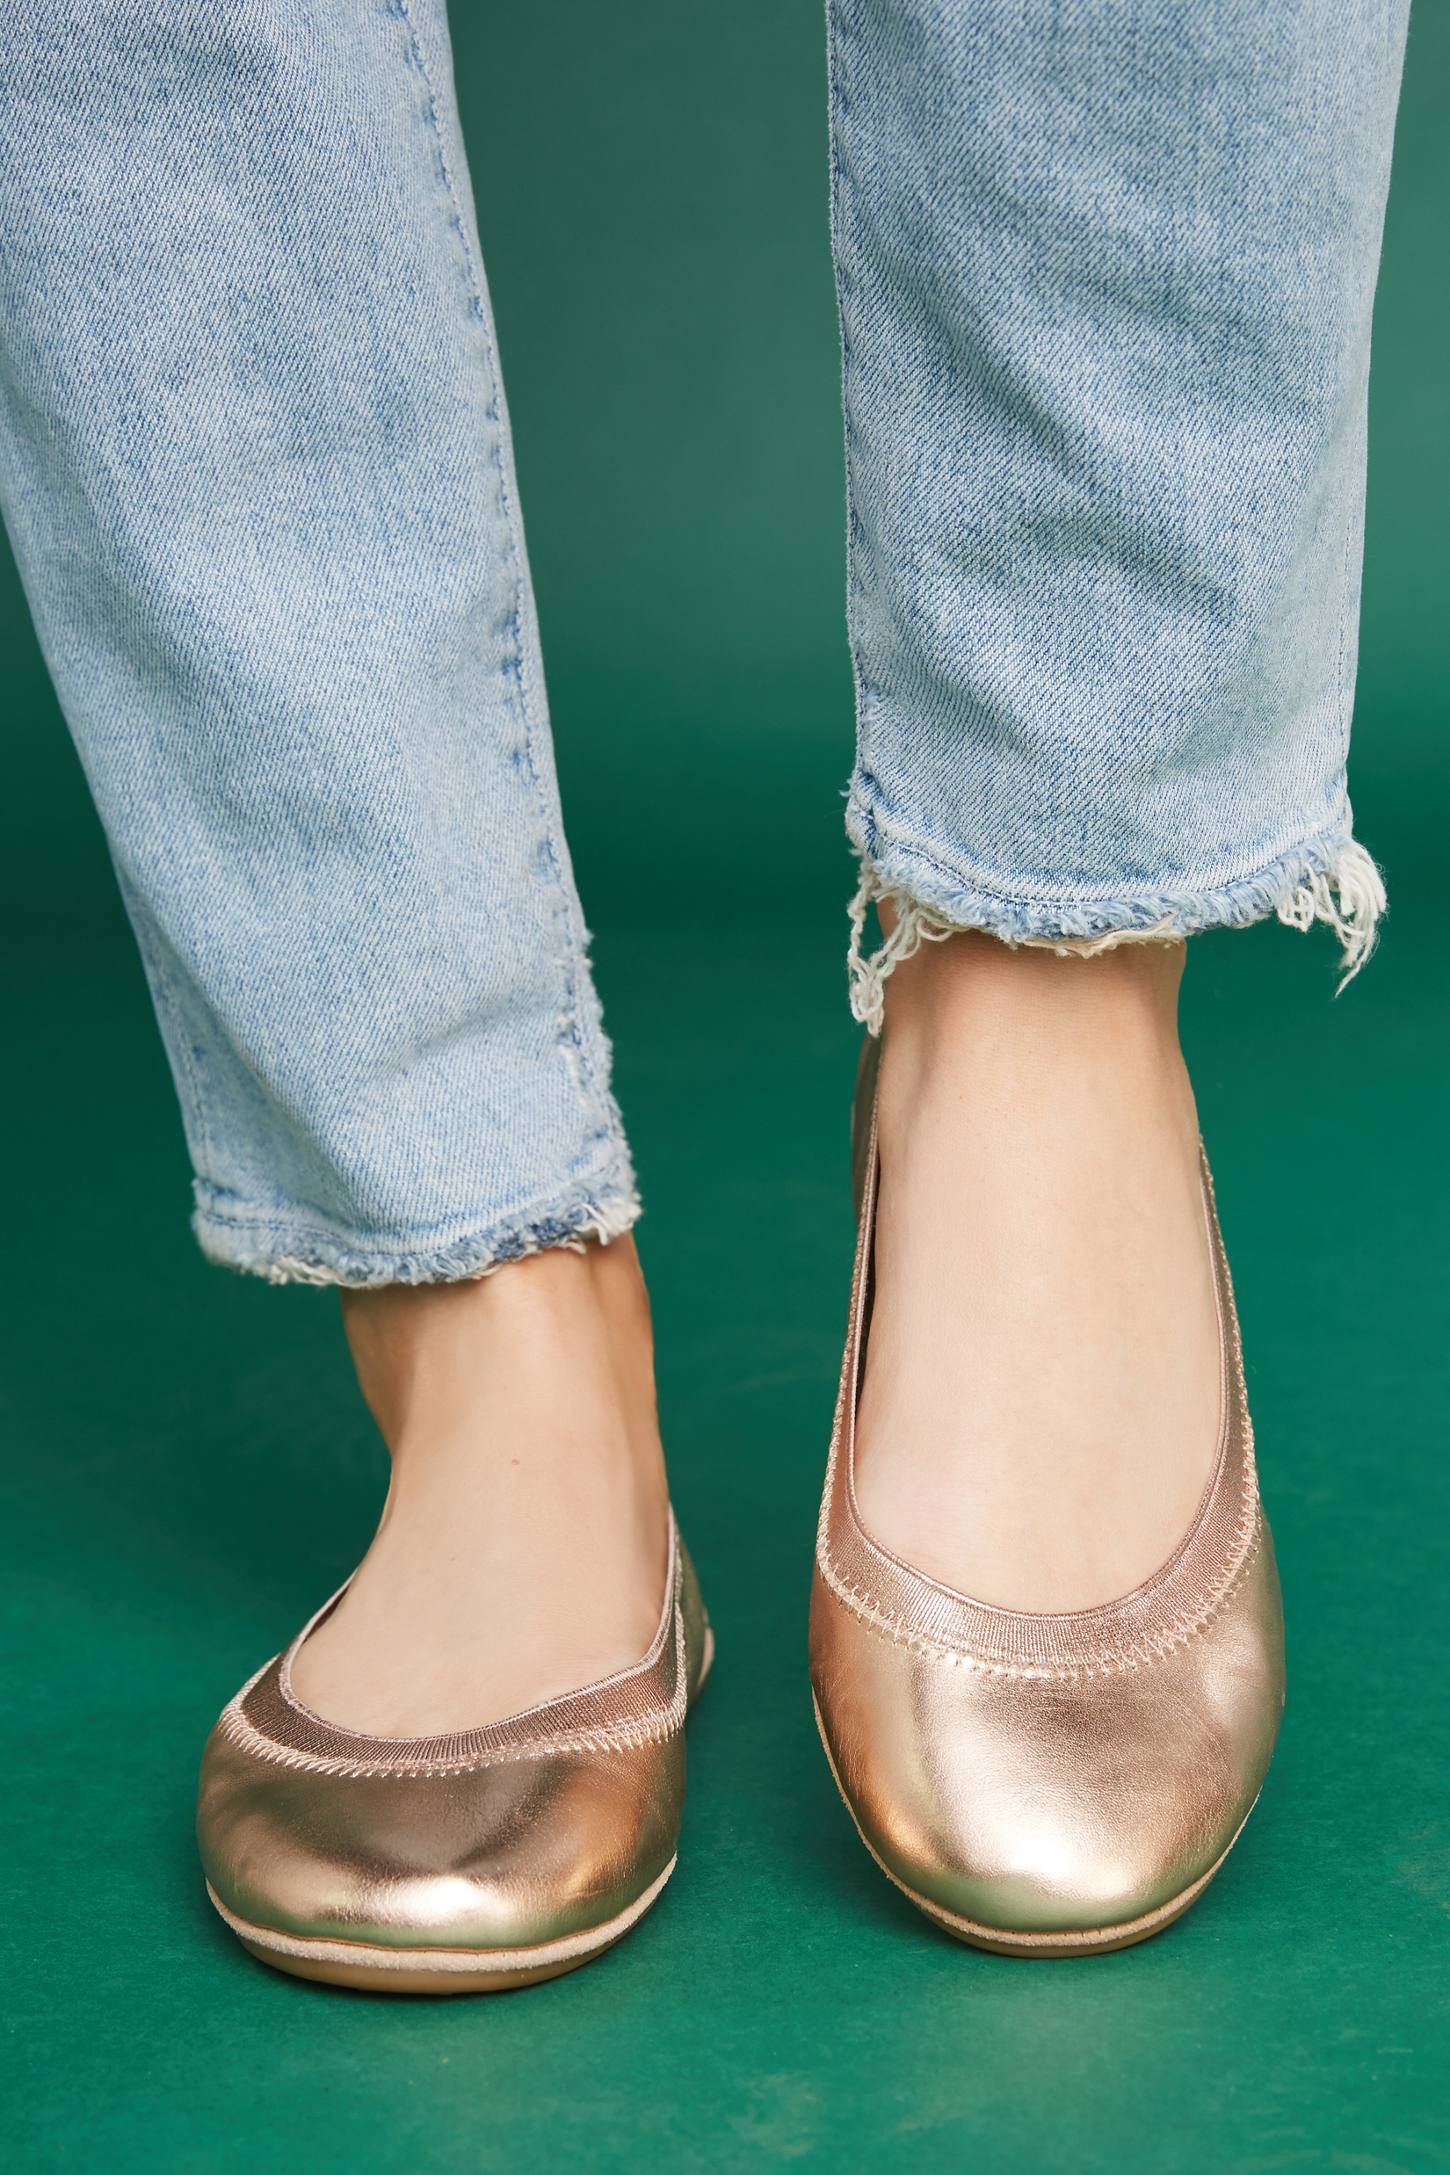 d27ac020496 Shop the Yosi Samra Rose Gold Ballet Flats and more Anthropologie at Anthropologie  today. Read customer reviews